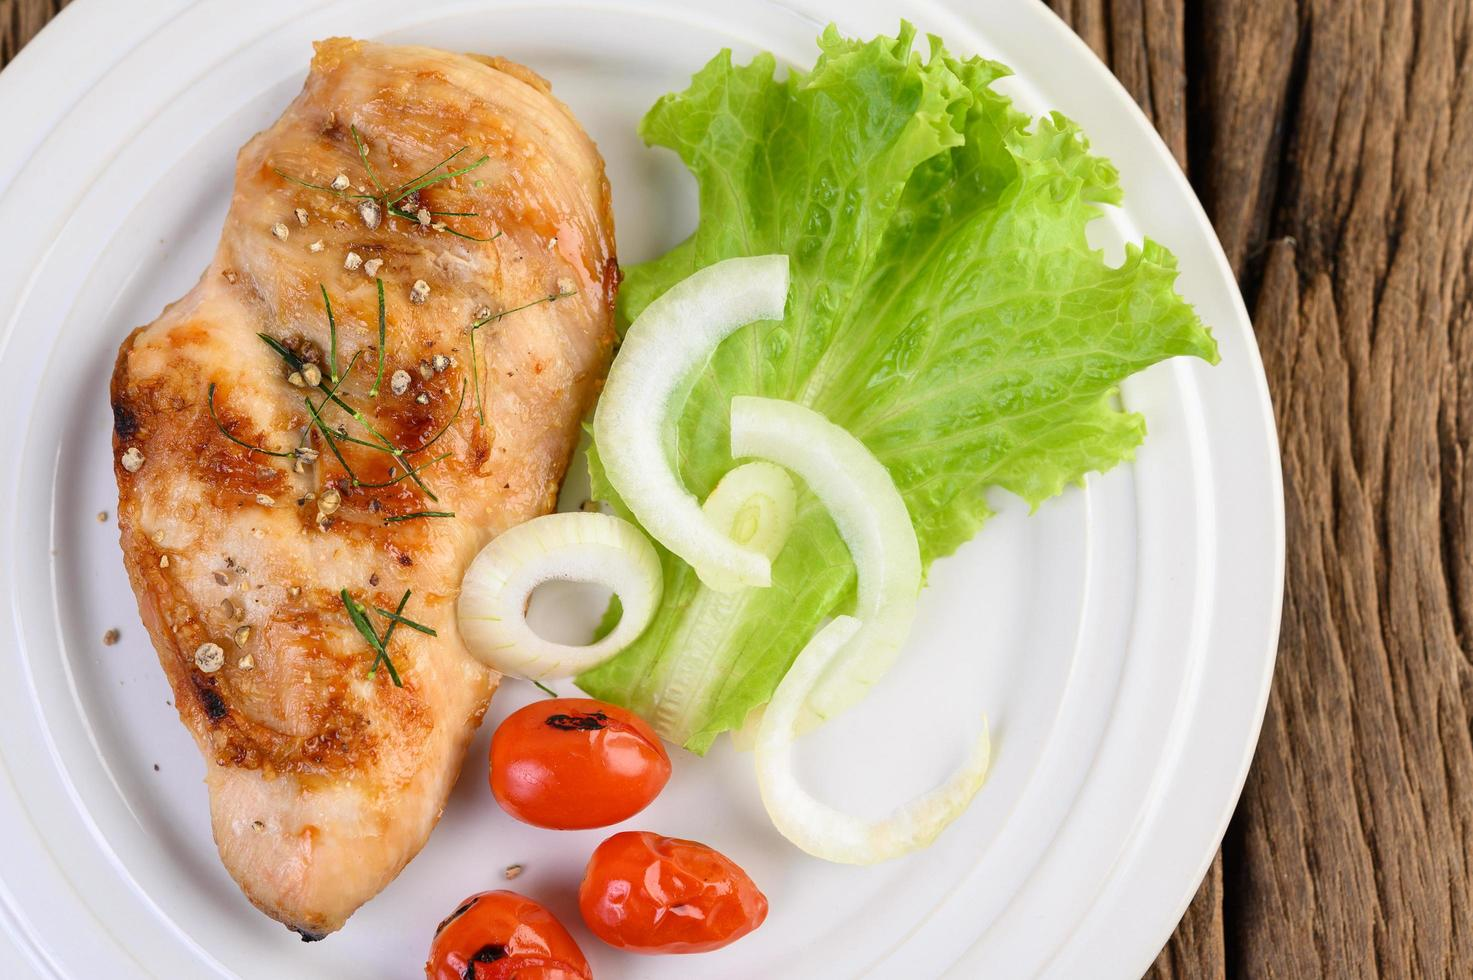 Grilled chicken on a plate with tomatoes, salad and onion photo